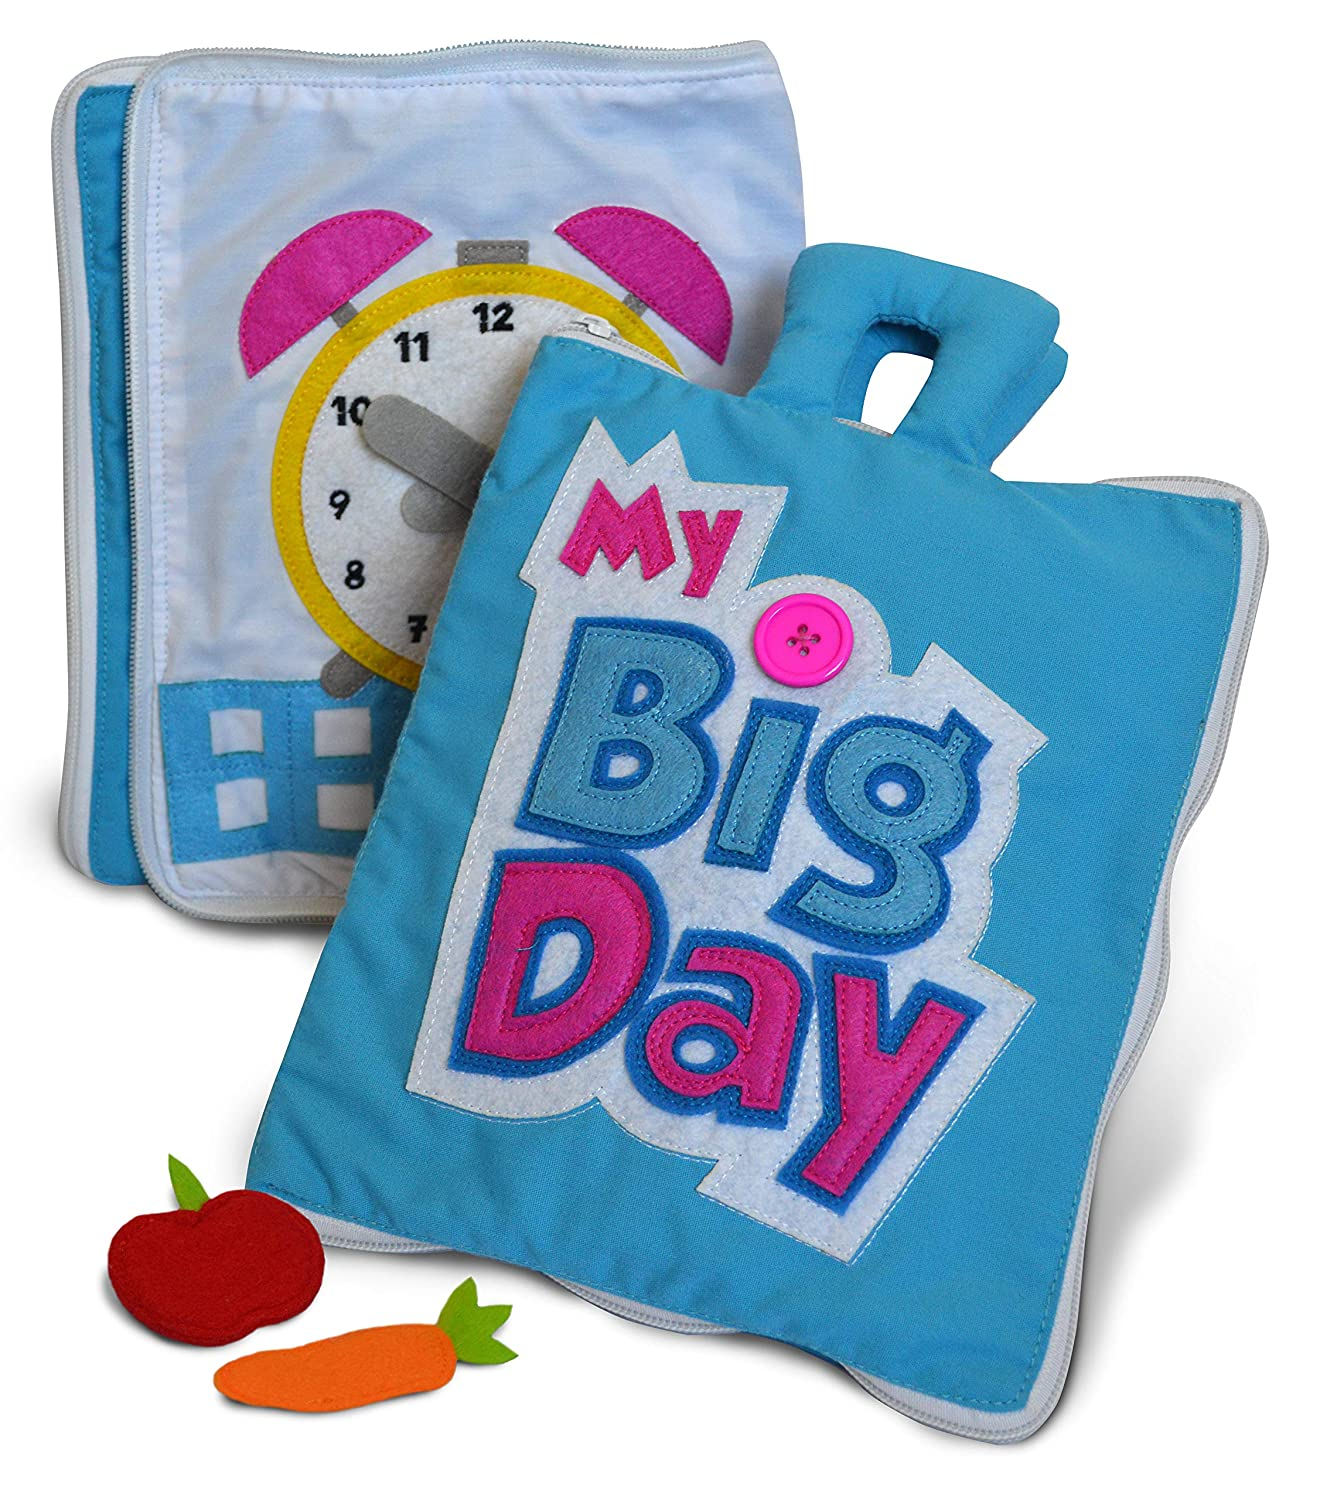 My Big Day Quiet Book By Curious Columbus. Top Rated Educational Toys For Toddlers and Preschool. Best Interactive Sensory Fabric Activity Book for Early Learning Little Red Shepherd